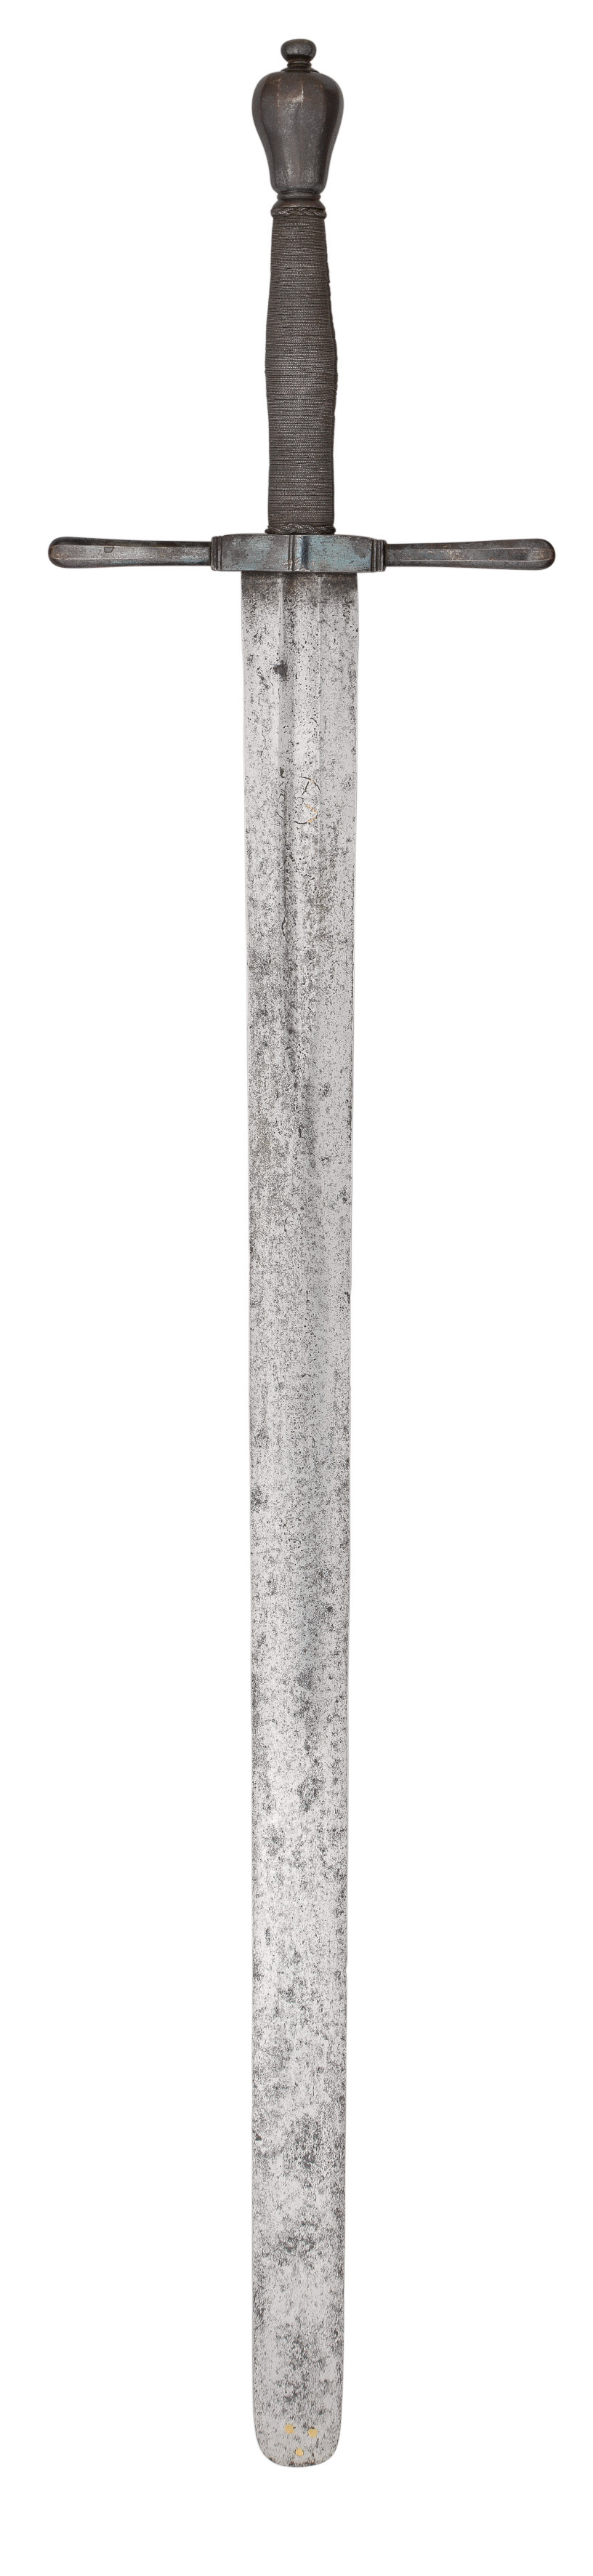 A GERMAN EXECUTIONER~S SWORD^ LATE 17TH CENTURY